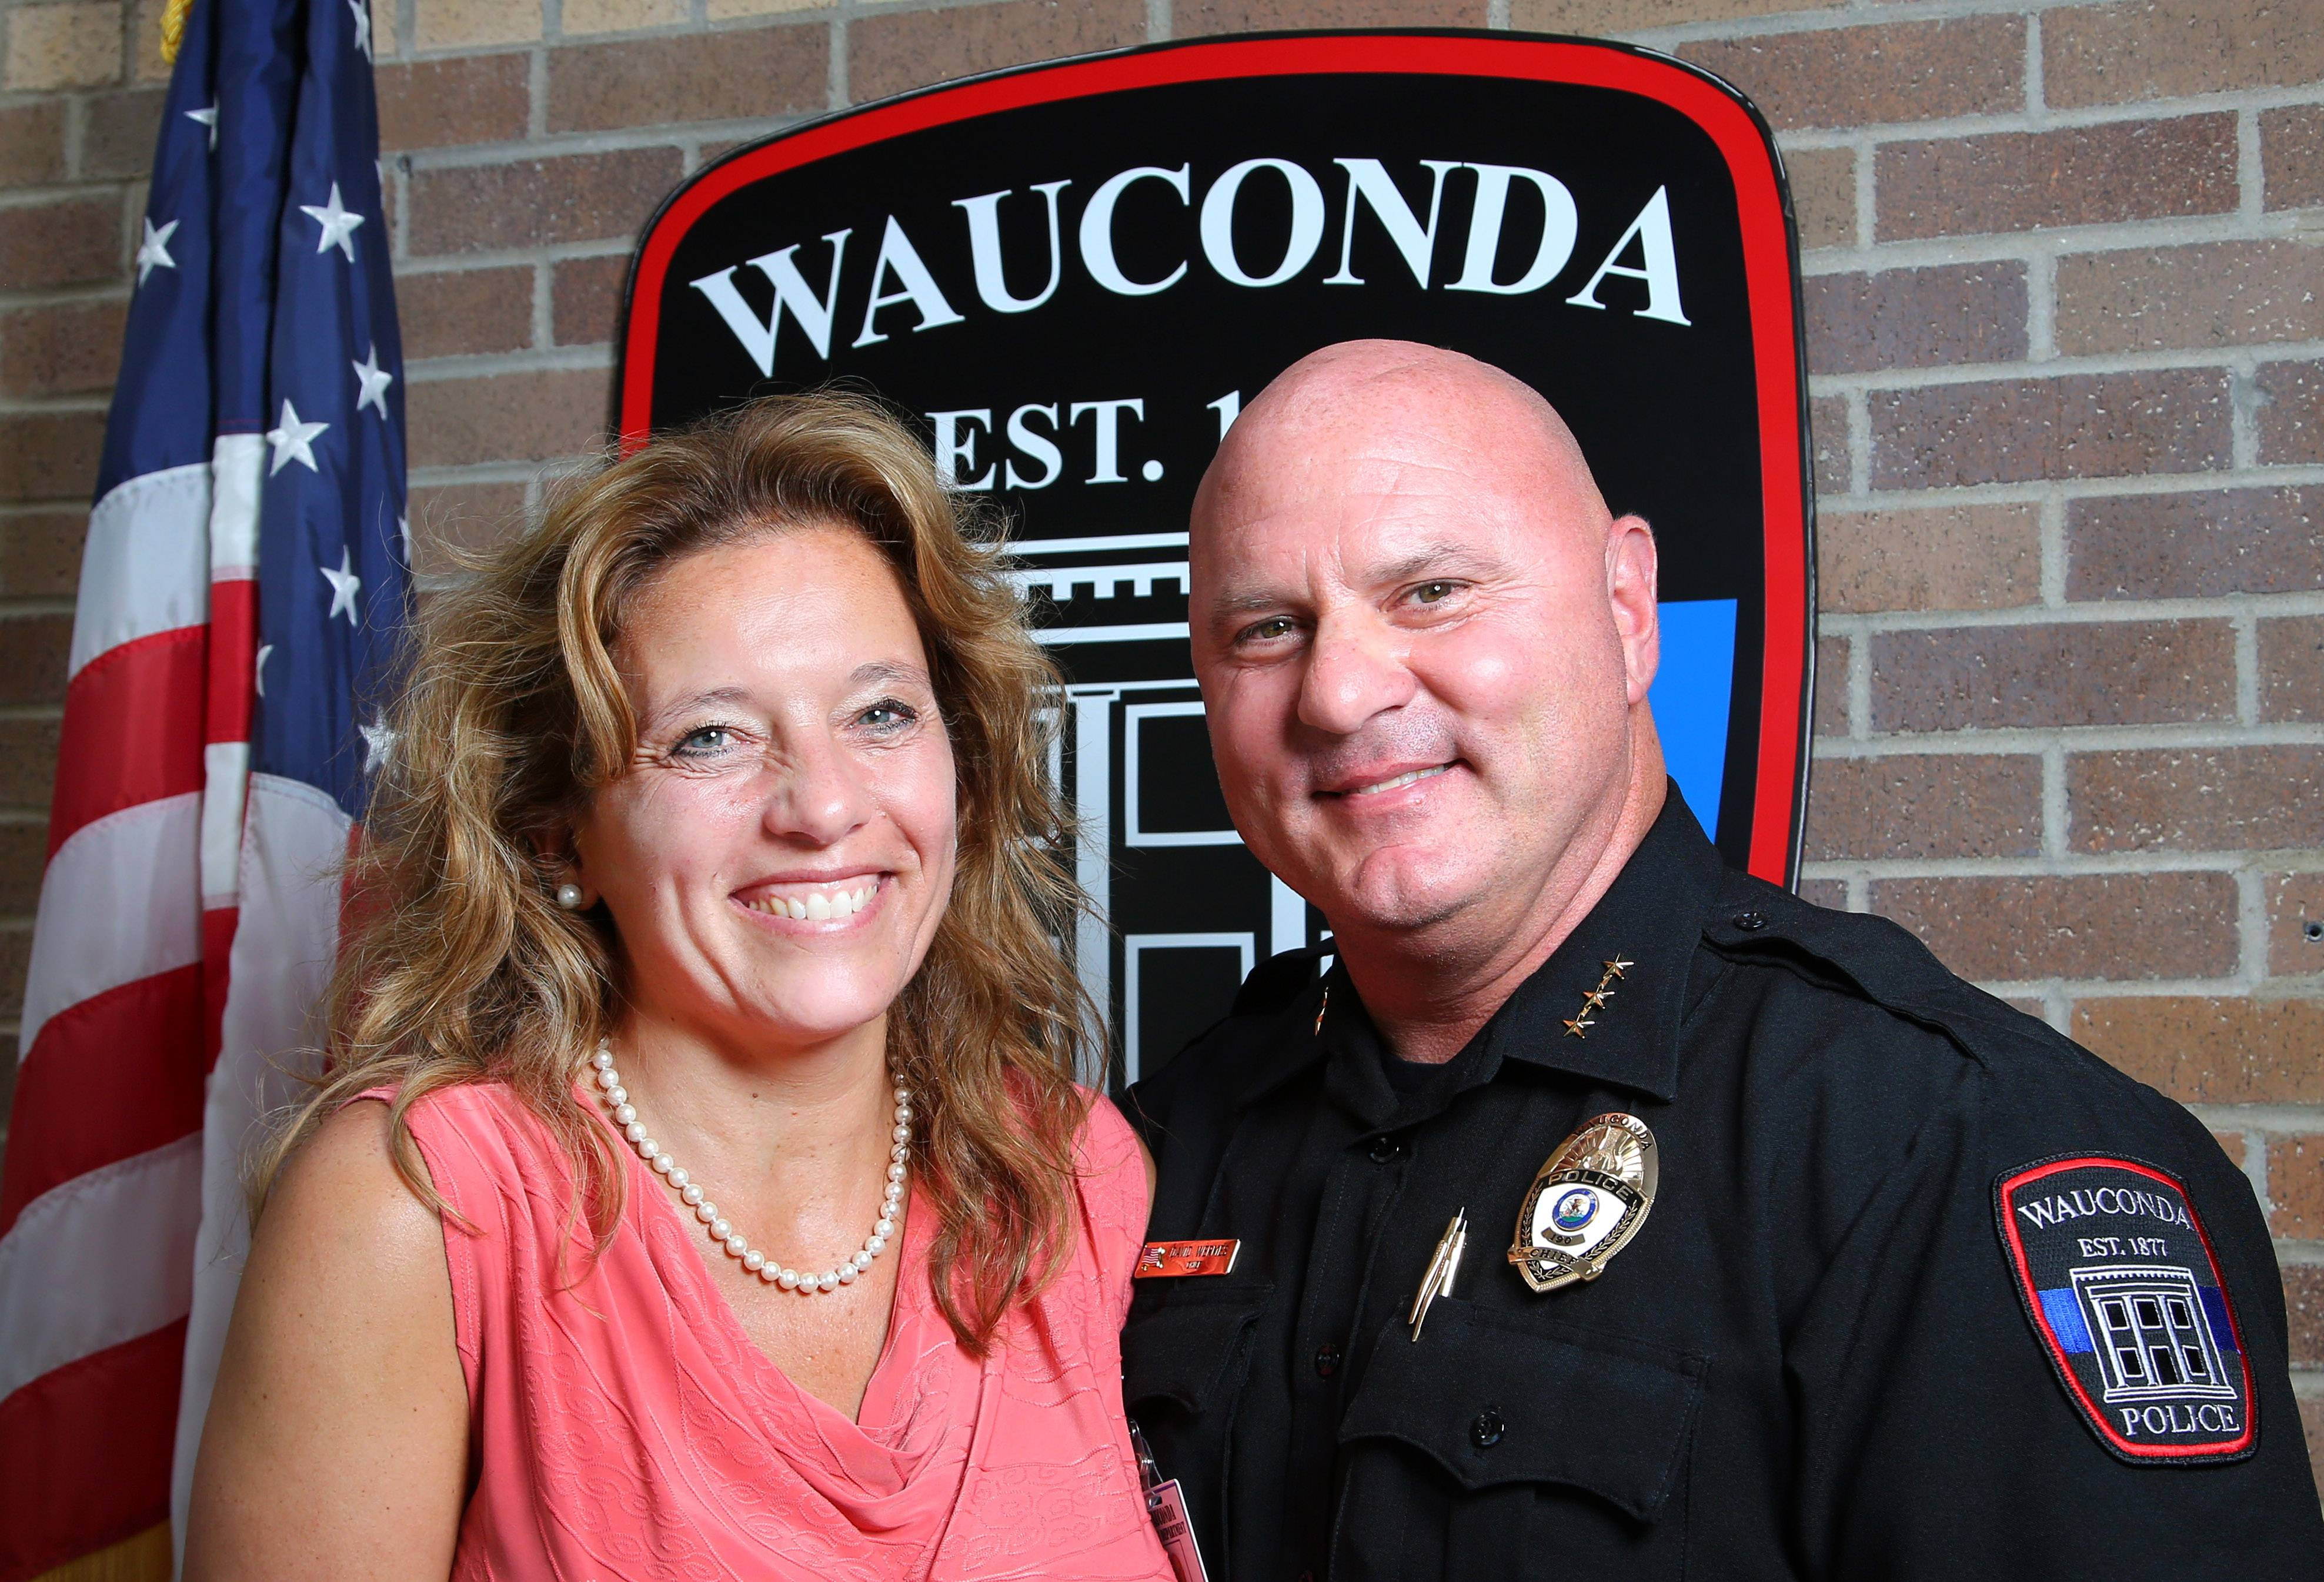 Future Business Leaders of America adviser Wendy Mills, left, and Wauconda Police Chief David Wermes are hoping the club's monthly community dinner will attract officers from all over Lake County. Cops will eat free at Wednesday's event.